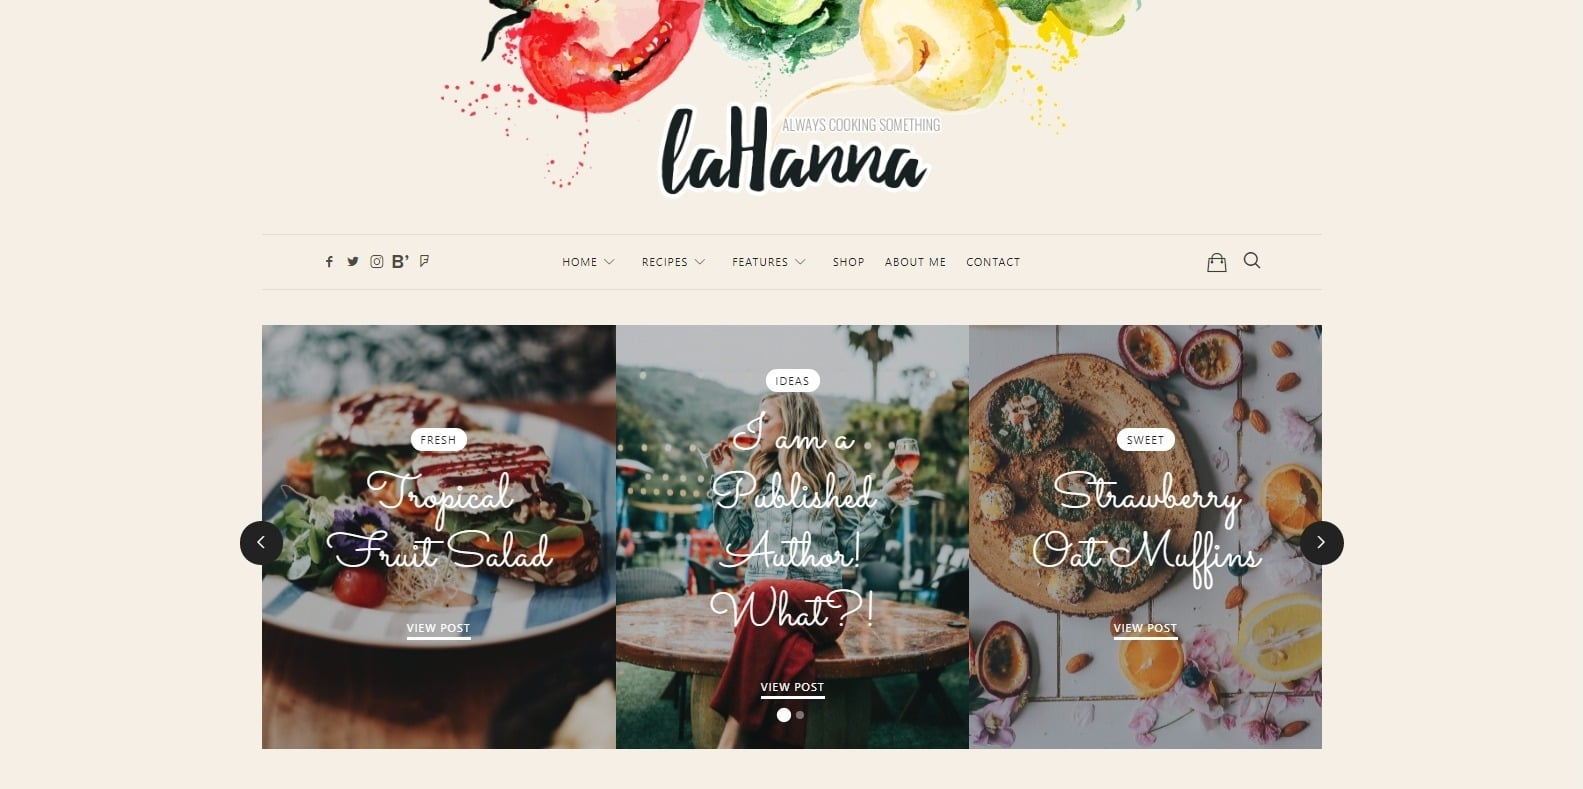 lahanna-food-blog-website-template